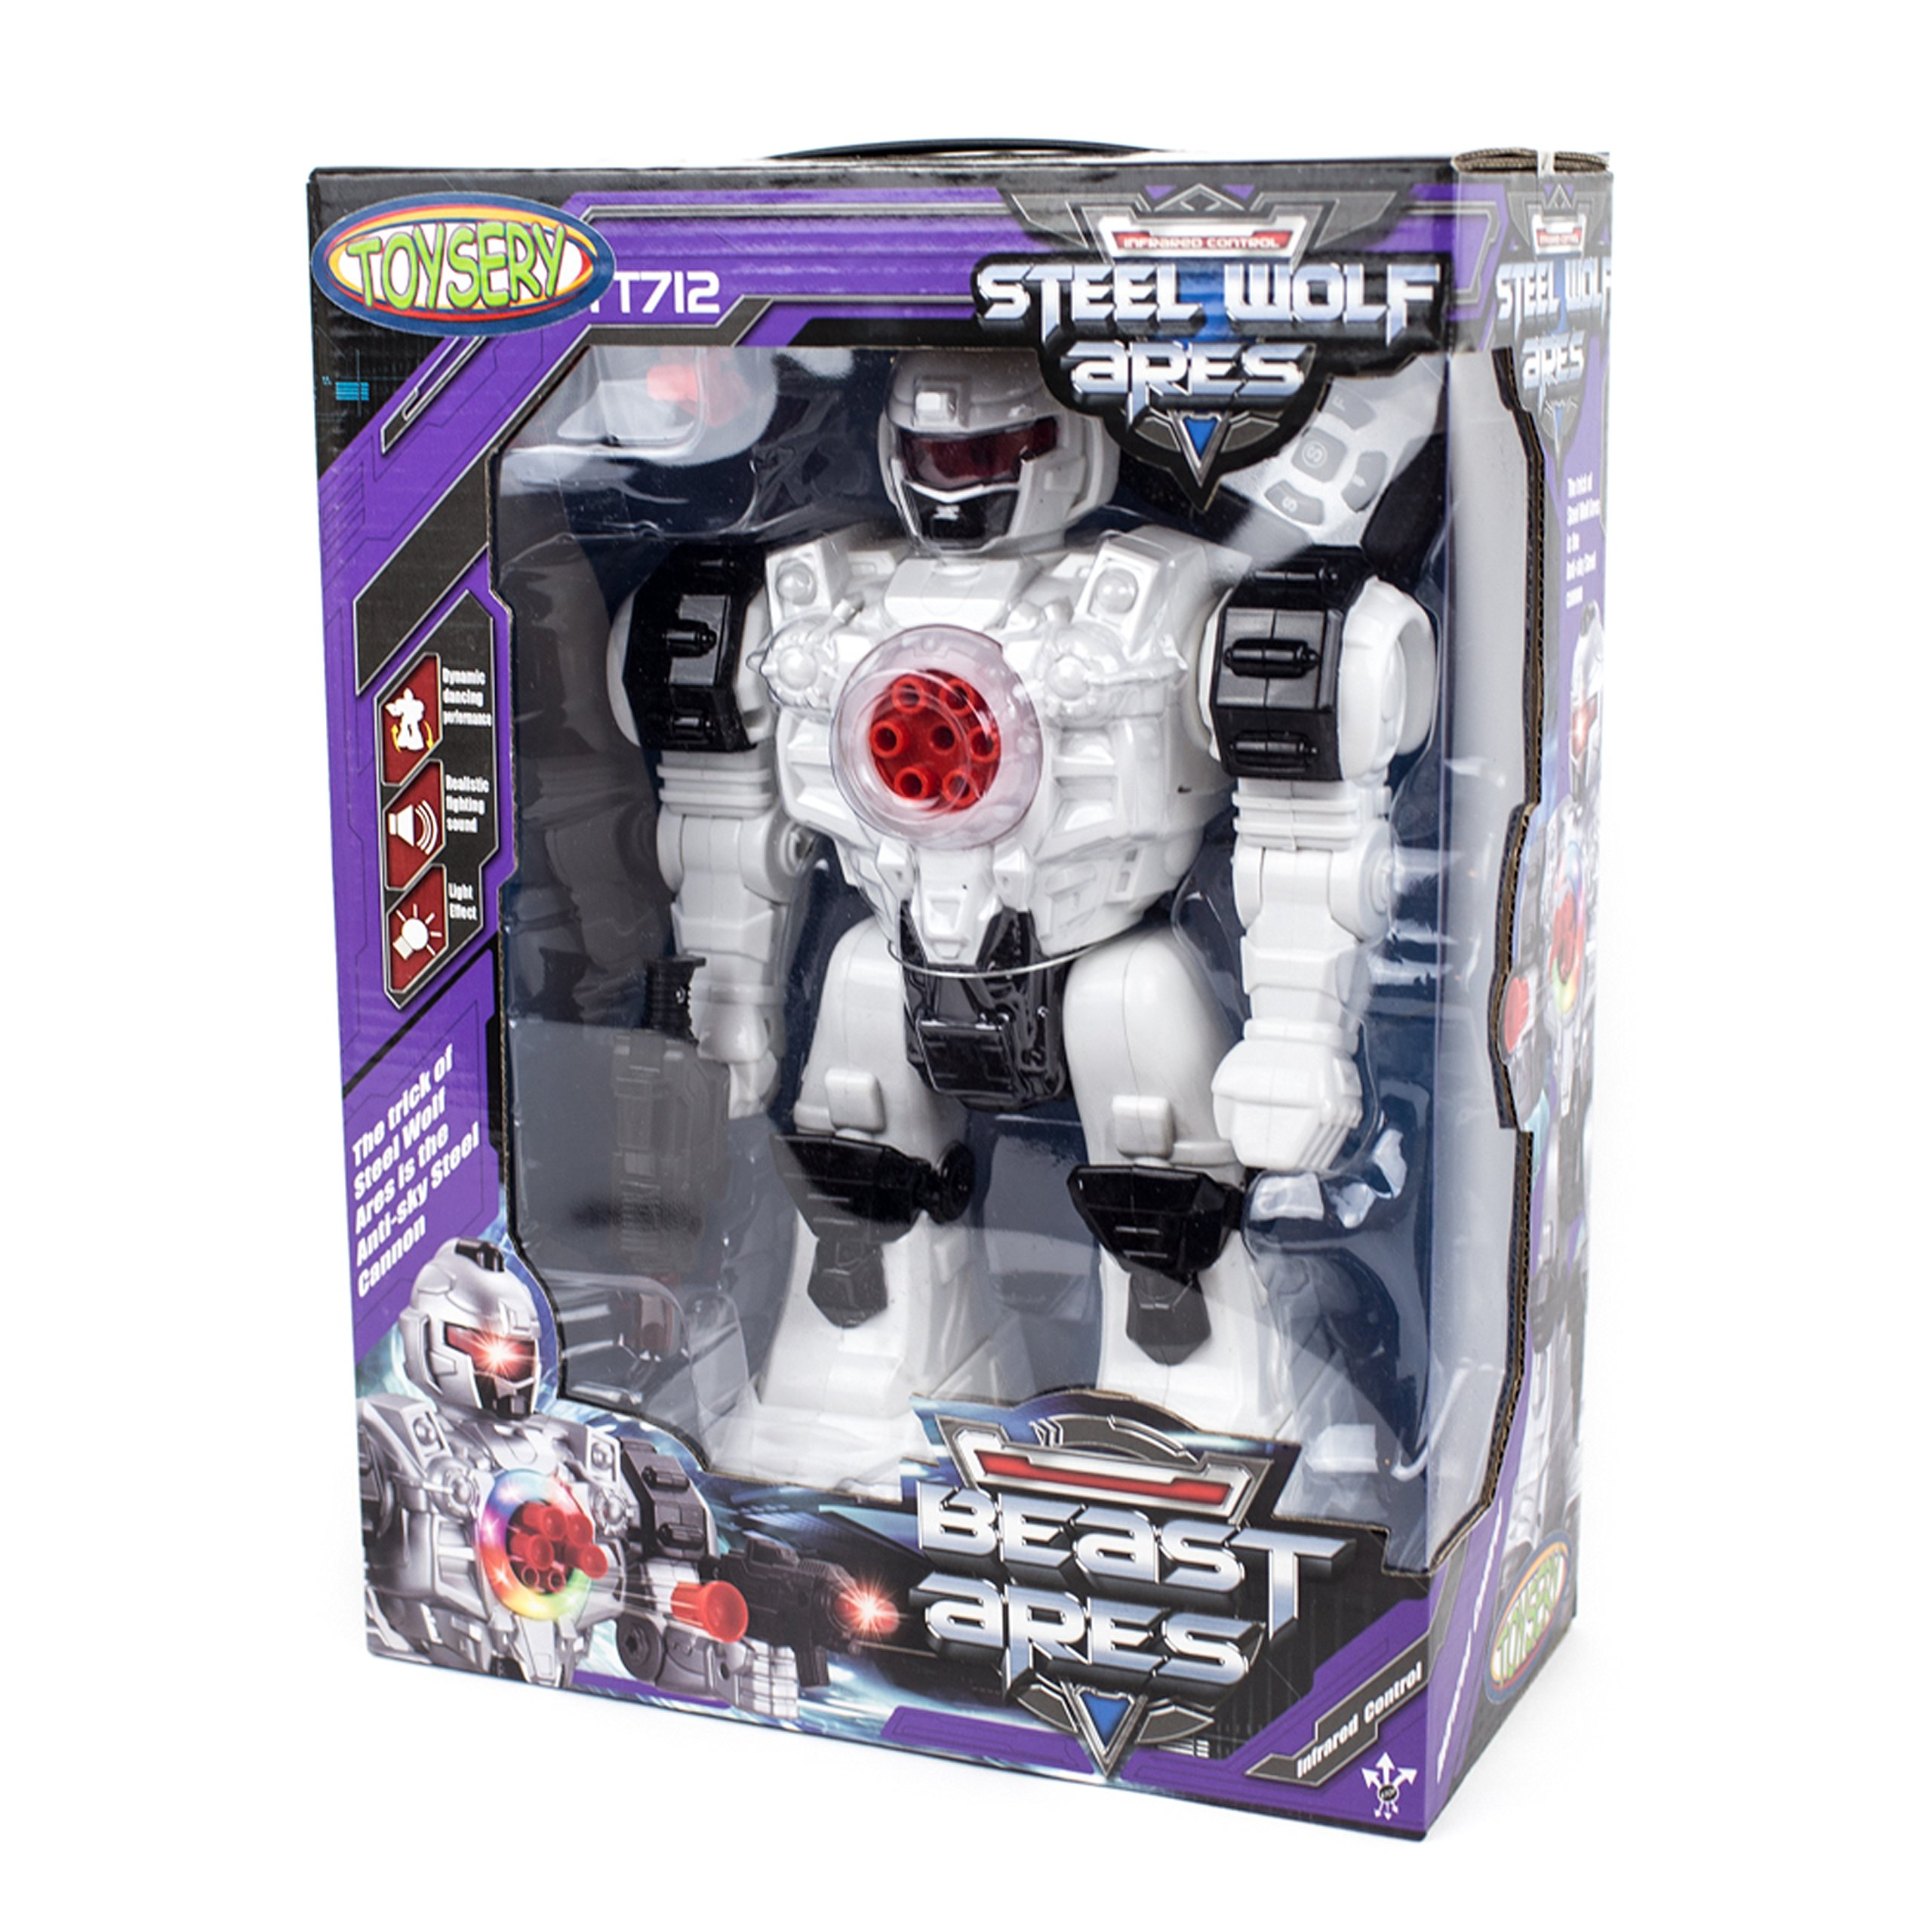 Toysery Remote Control Robot Police Toy for Kids Boys Girls with Flashing Lights Action Toy for Boys by Toysery (Image #5)